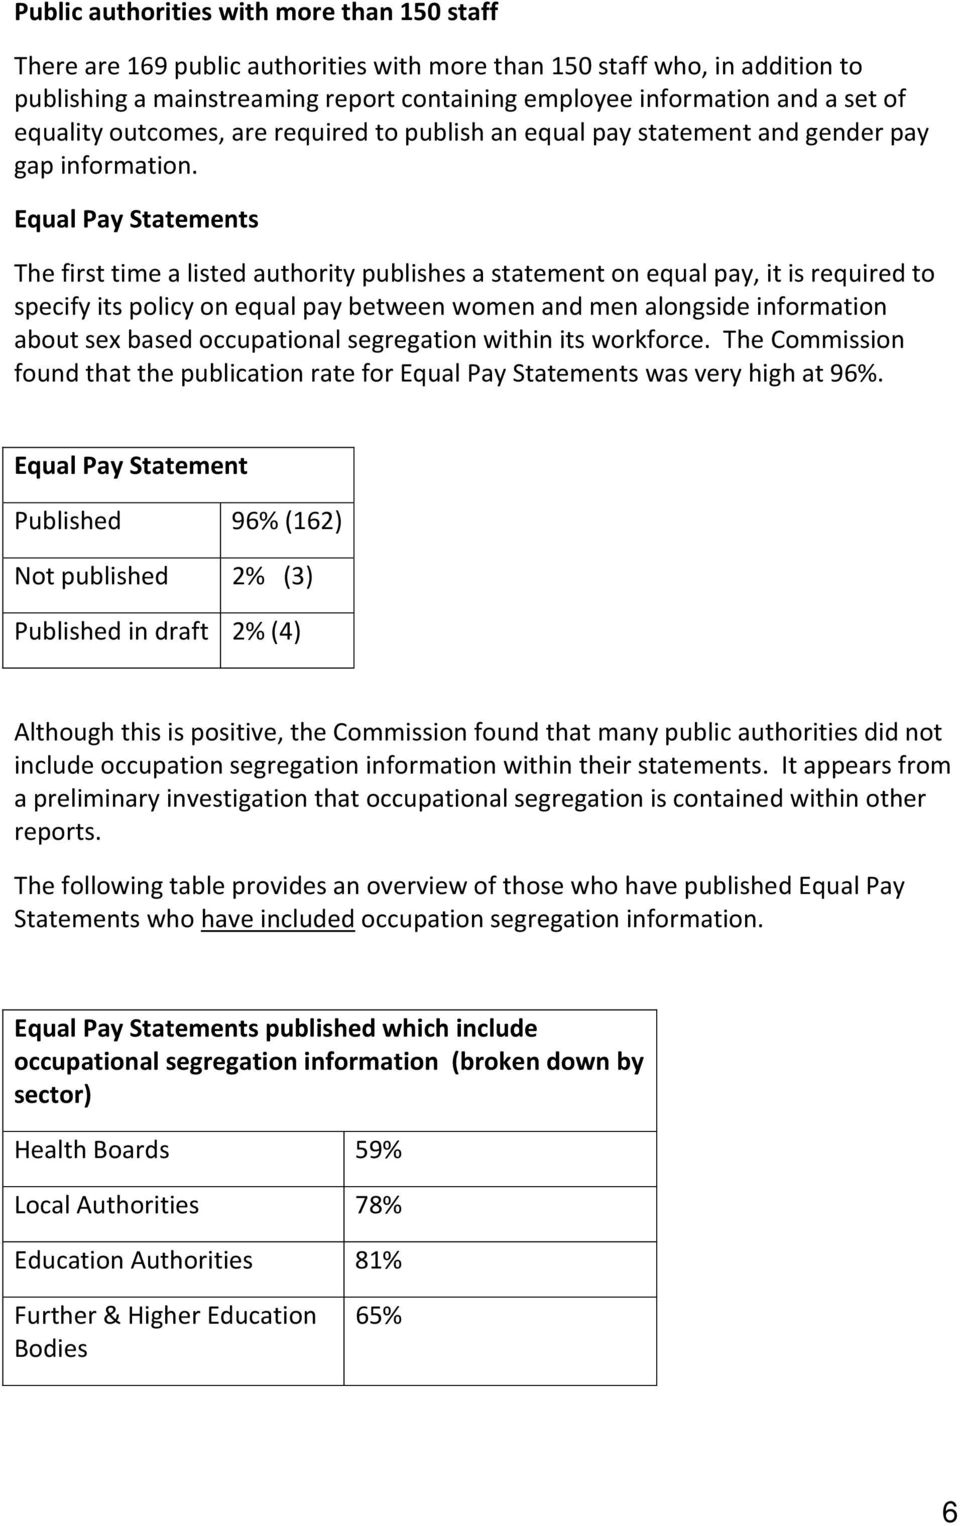 Equal Pay Statements The first time a listed authority publishes a statement on equal pay, it is required to specify its policy on equal pay between women and men alongside information about sex